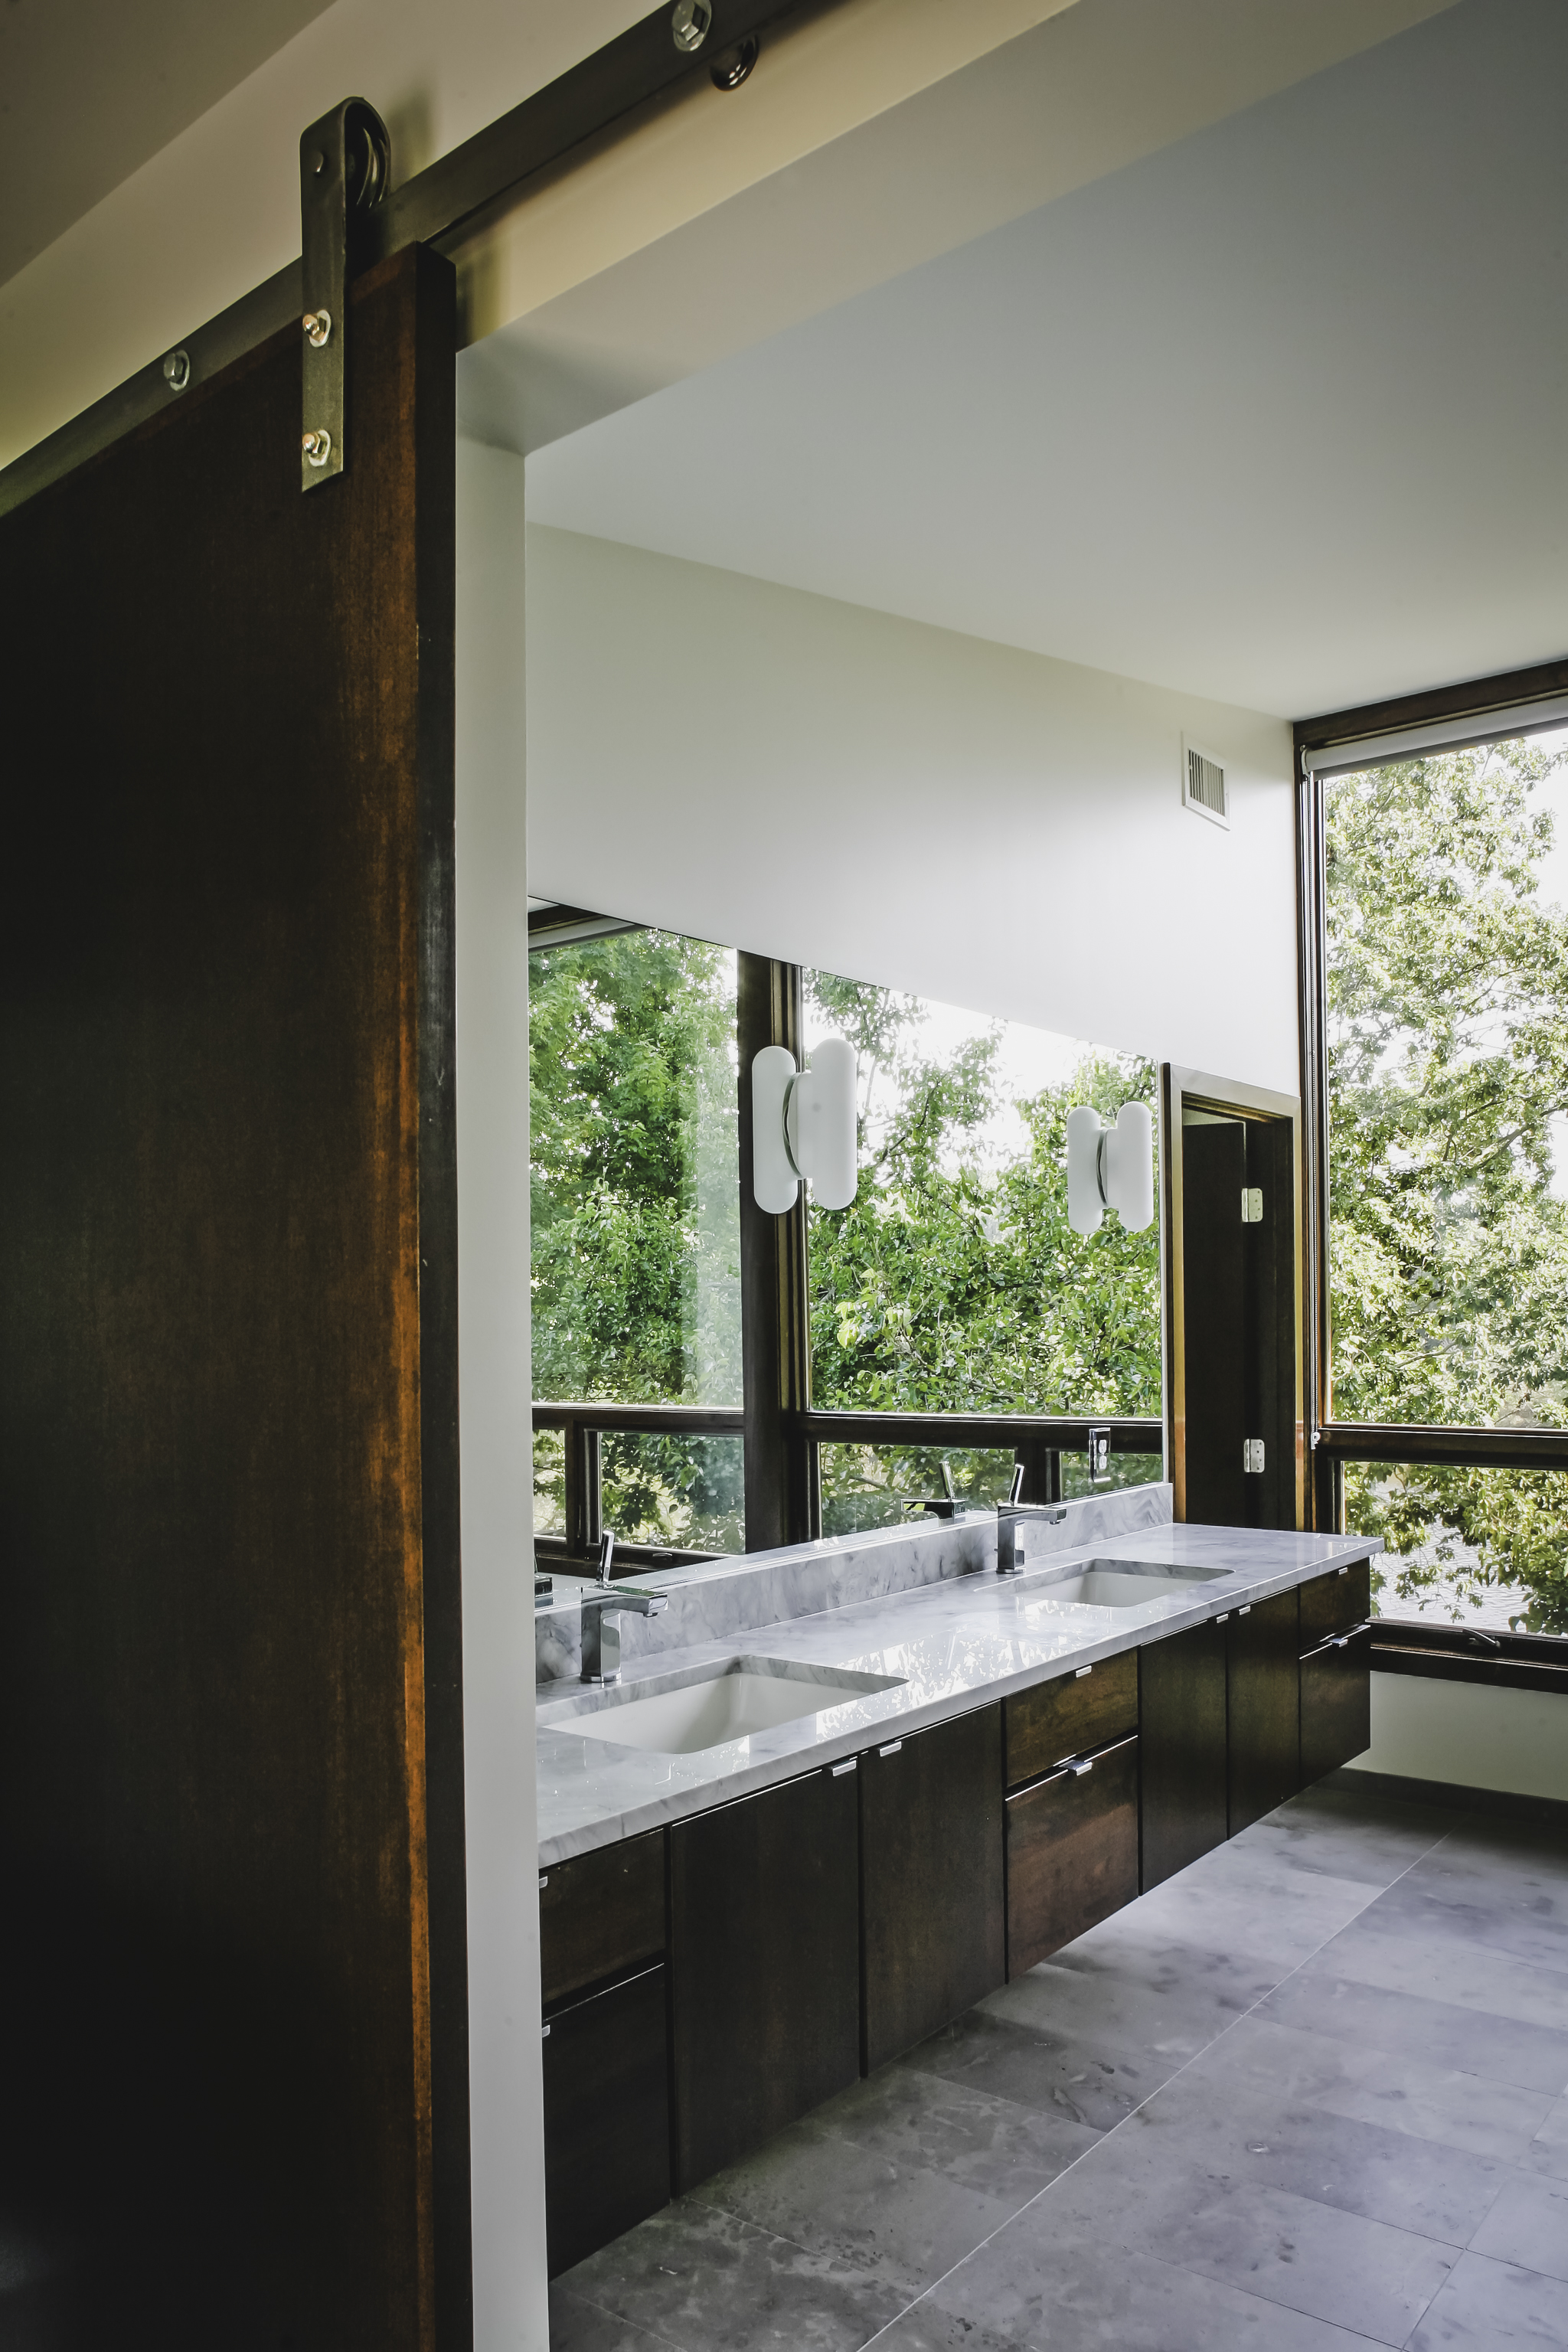 CARLSON RESIDENCE BATH DOOR - OOMBRA ARCHITECTS